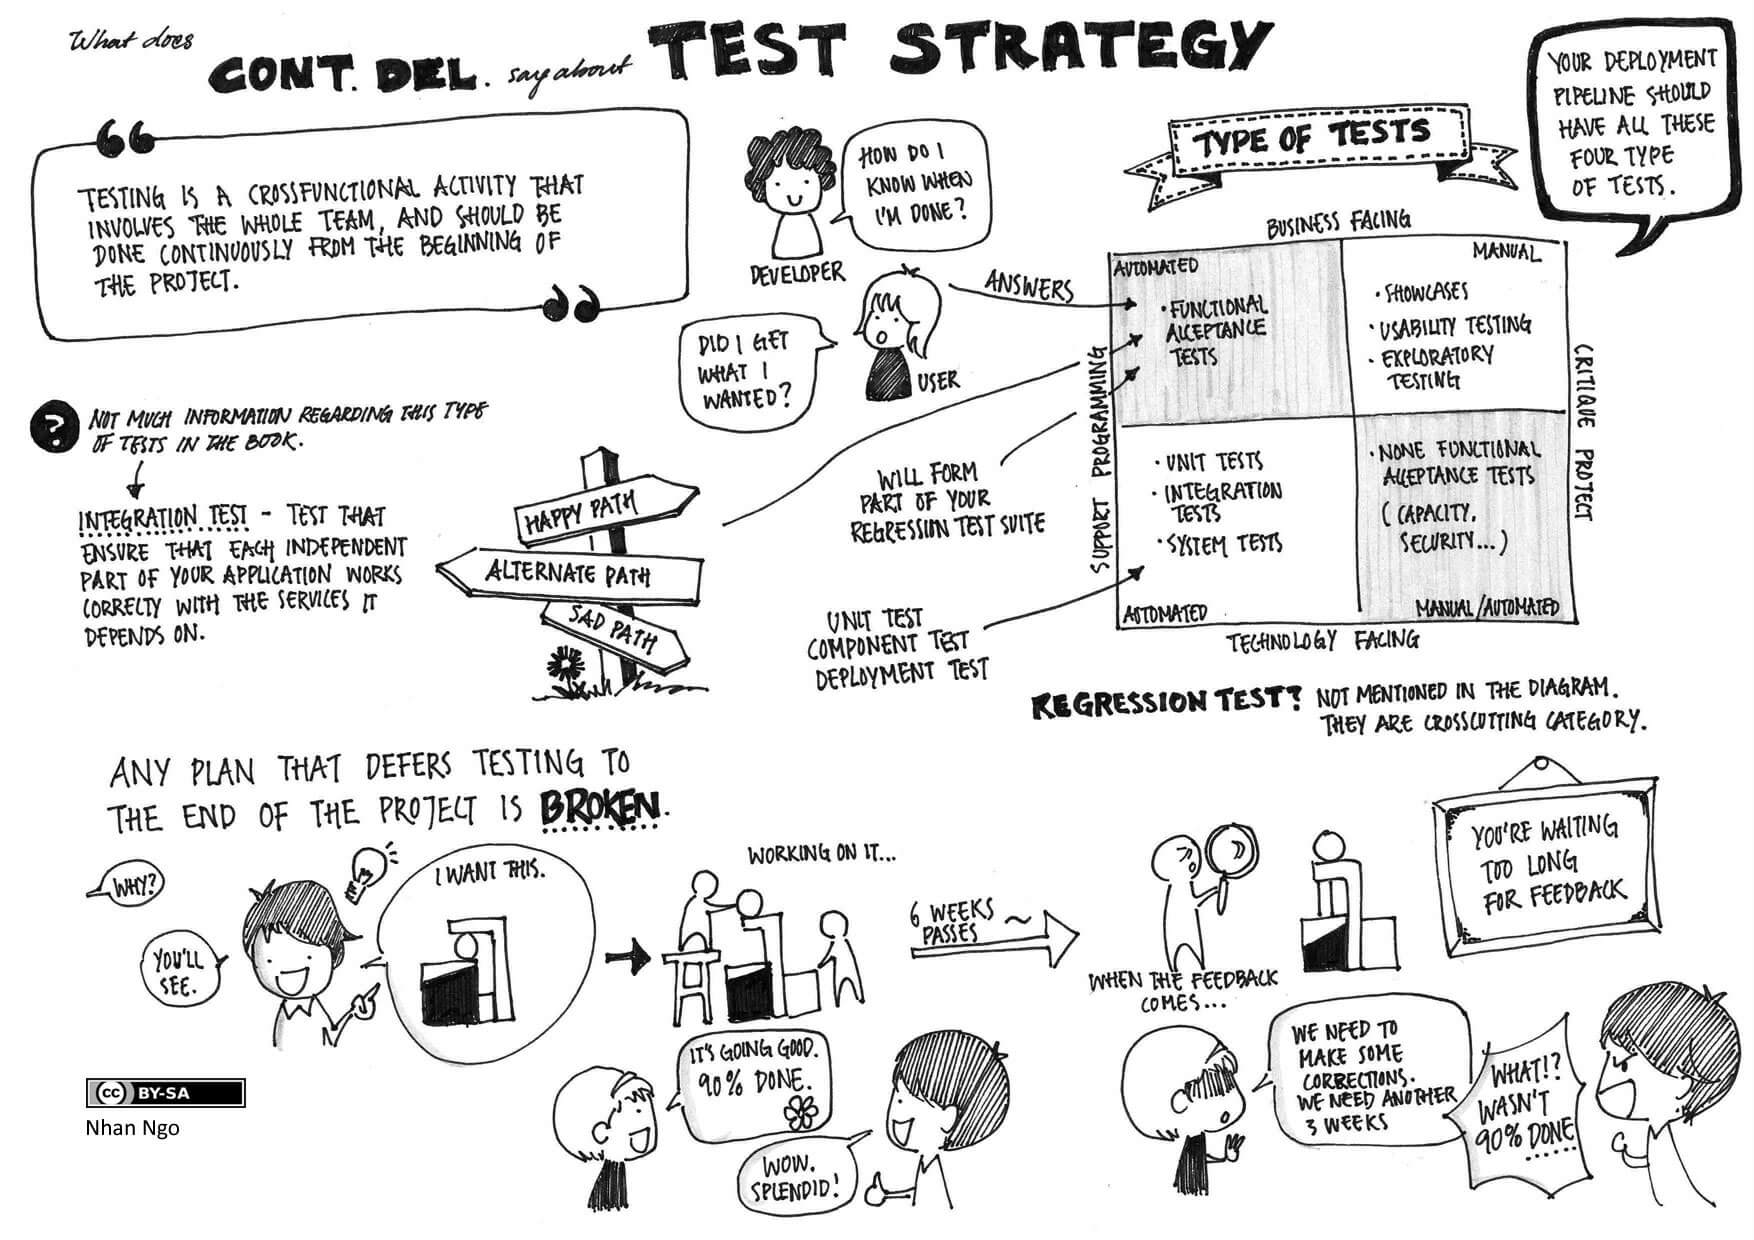 BeyondJava.net on testing strategies. Image published by Nahn Ngo under the Creative Commons Attribution-Share Alike 4.0 International license on Wikimedia (https://commons.wikimedia.org/wiki/File:Continous_Delivery_Test_Strategy.jpg).